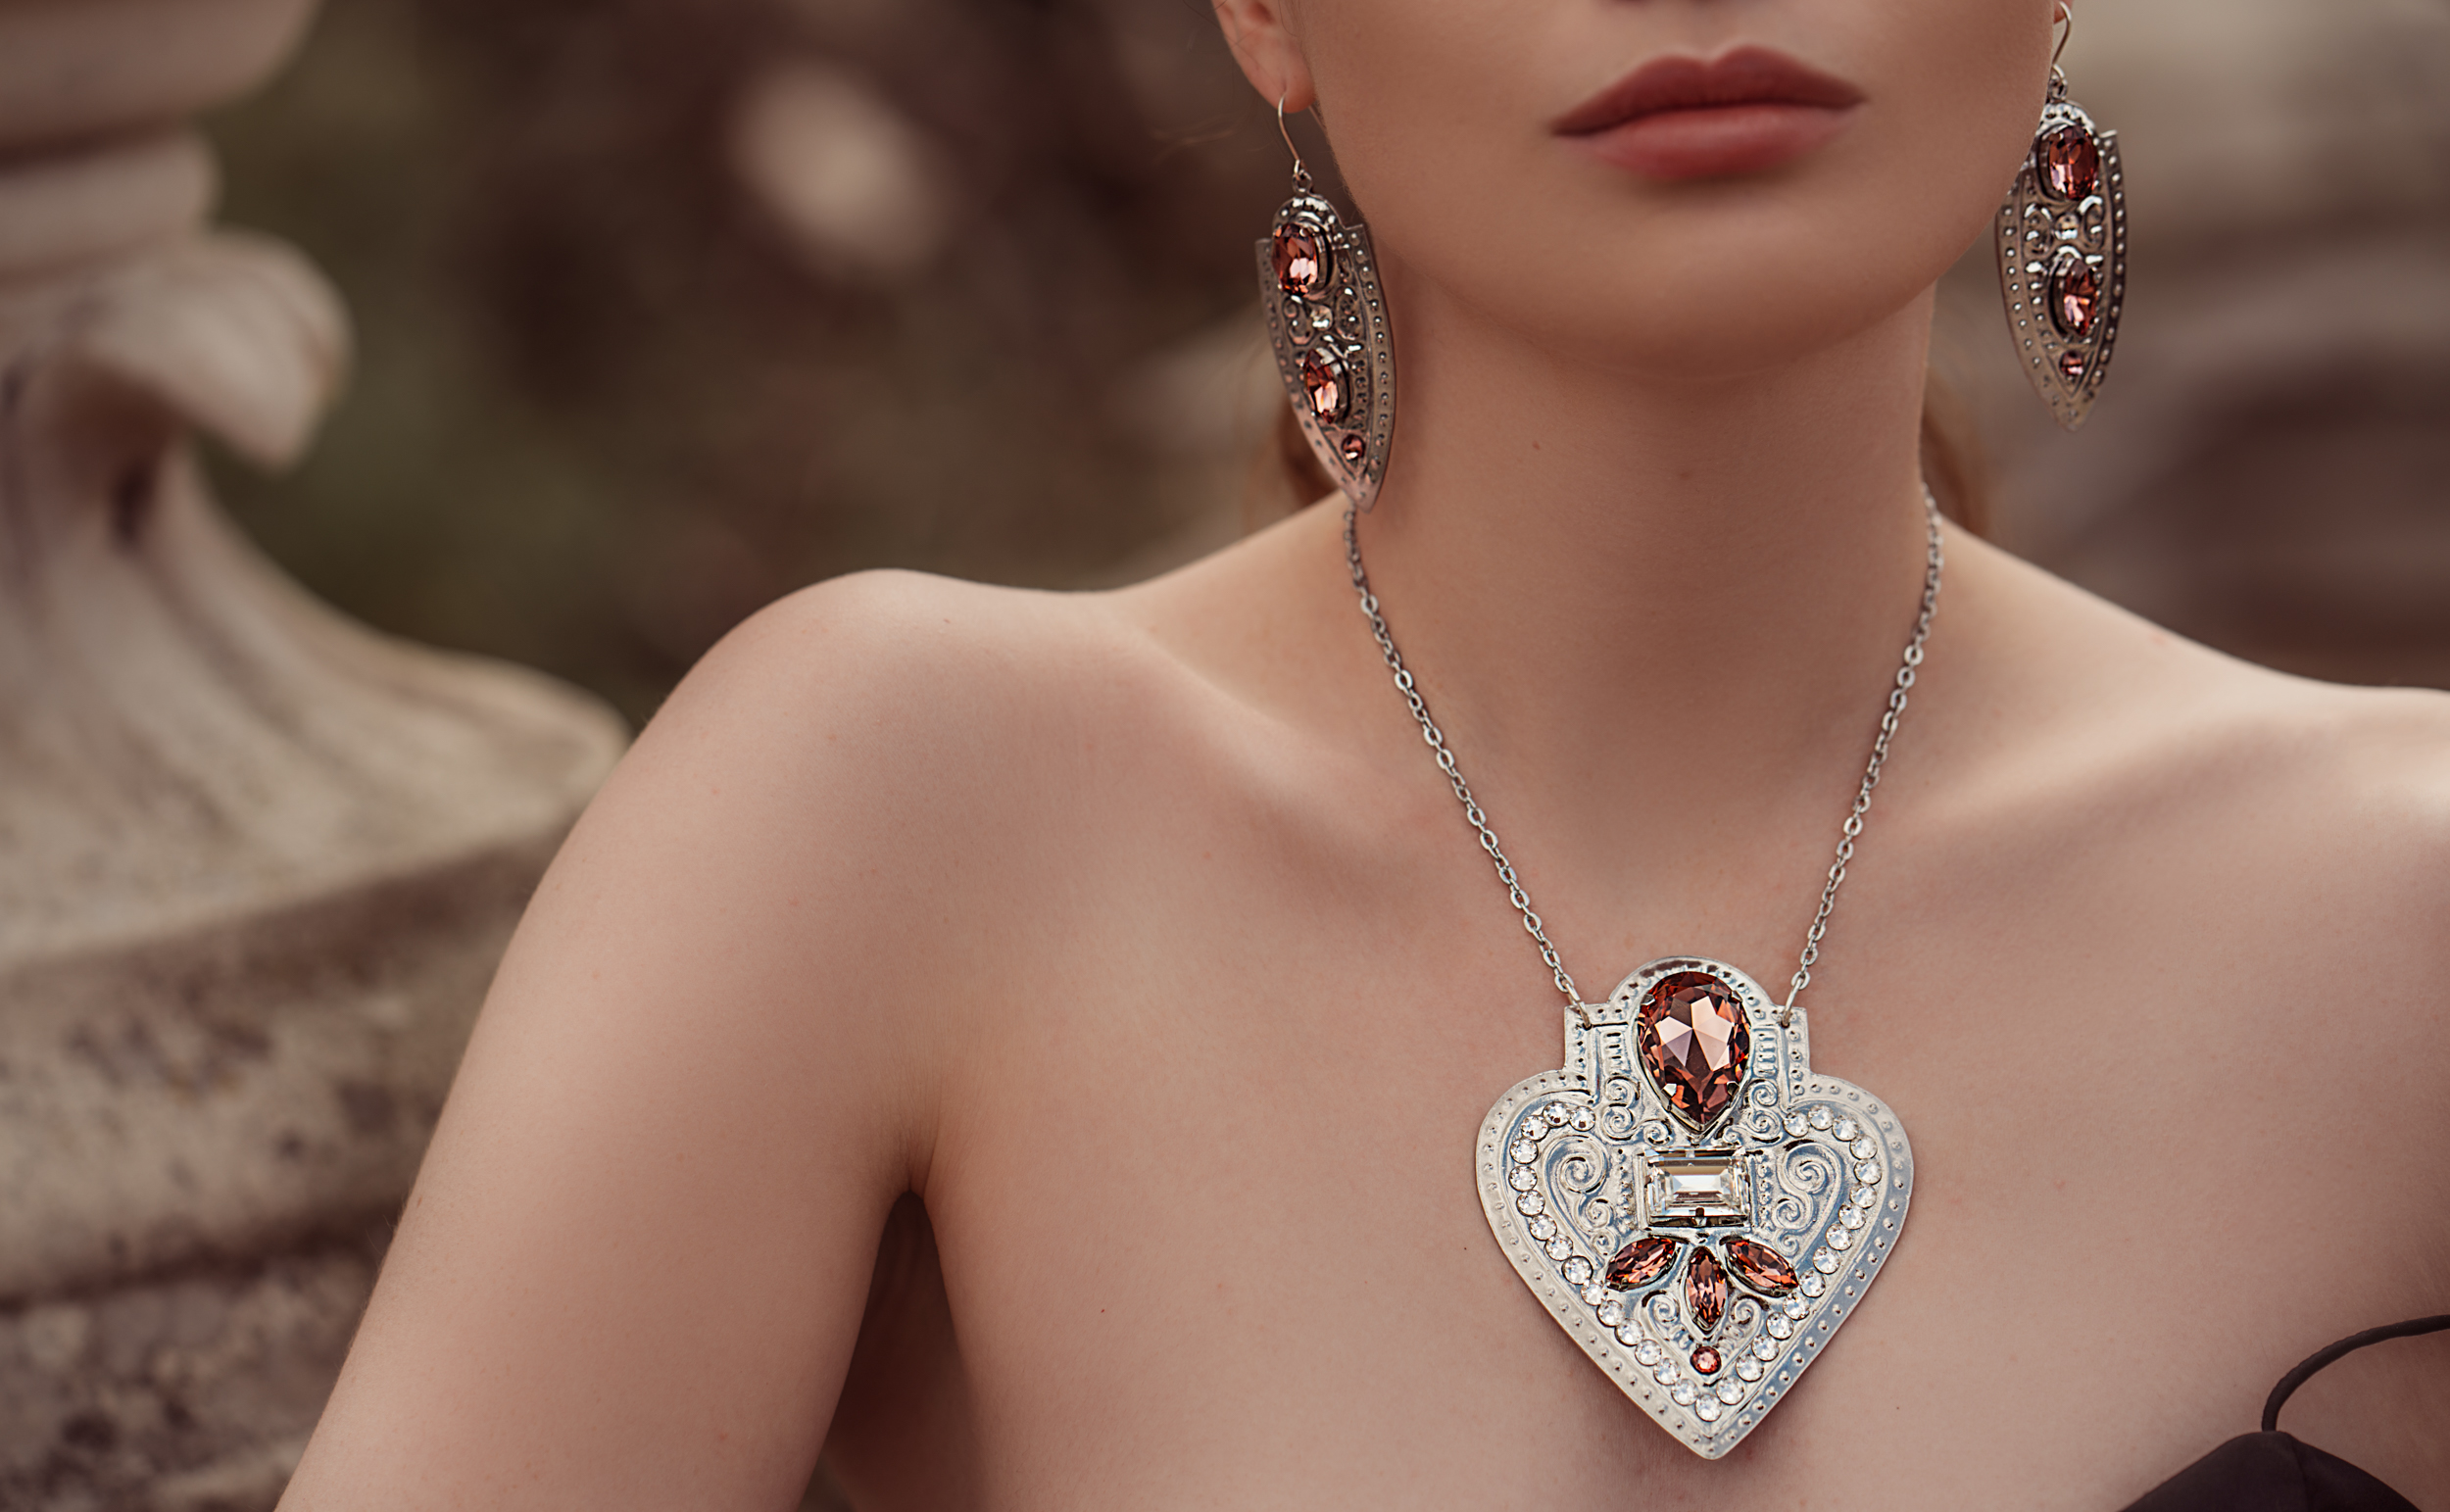 GILL-CLEMENT-MUSE-COLLECTION-JEWELLERY-SHOP-ONLINE-LOOK-BOOK-3.jpg